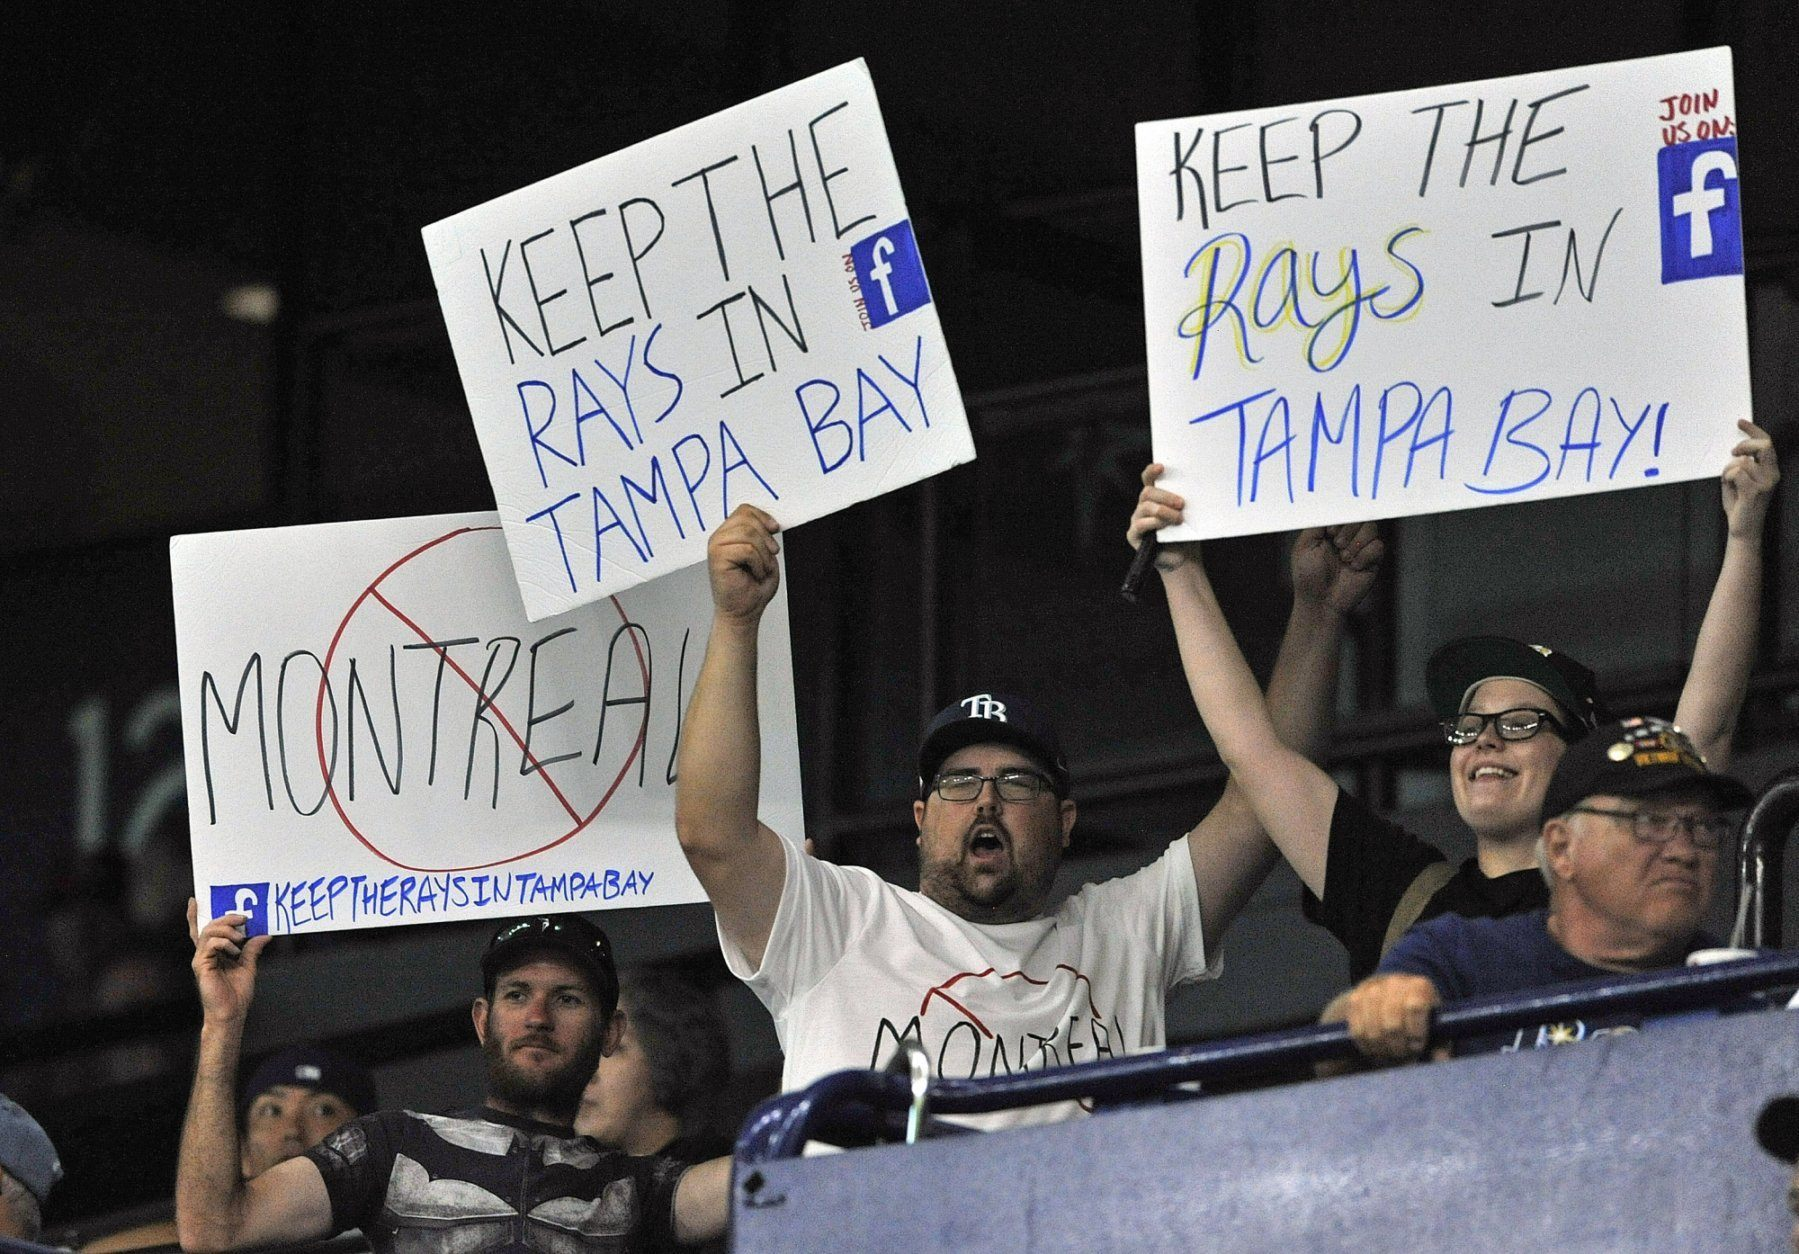 A group of Tampa Bay Rays fans carry signs around the stadium during a baseball game against the Baltimore Orioles Monday, July 1, 2019, in St. Petersburg, Fla. (AP Photo/Steve Nesius)